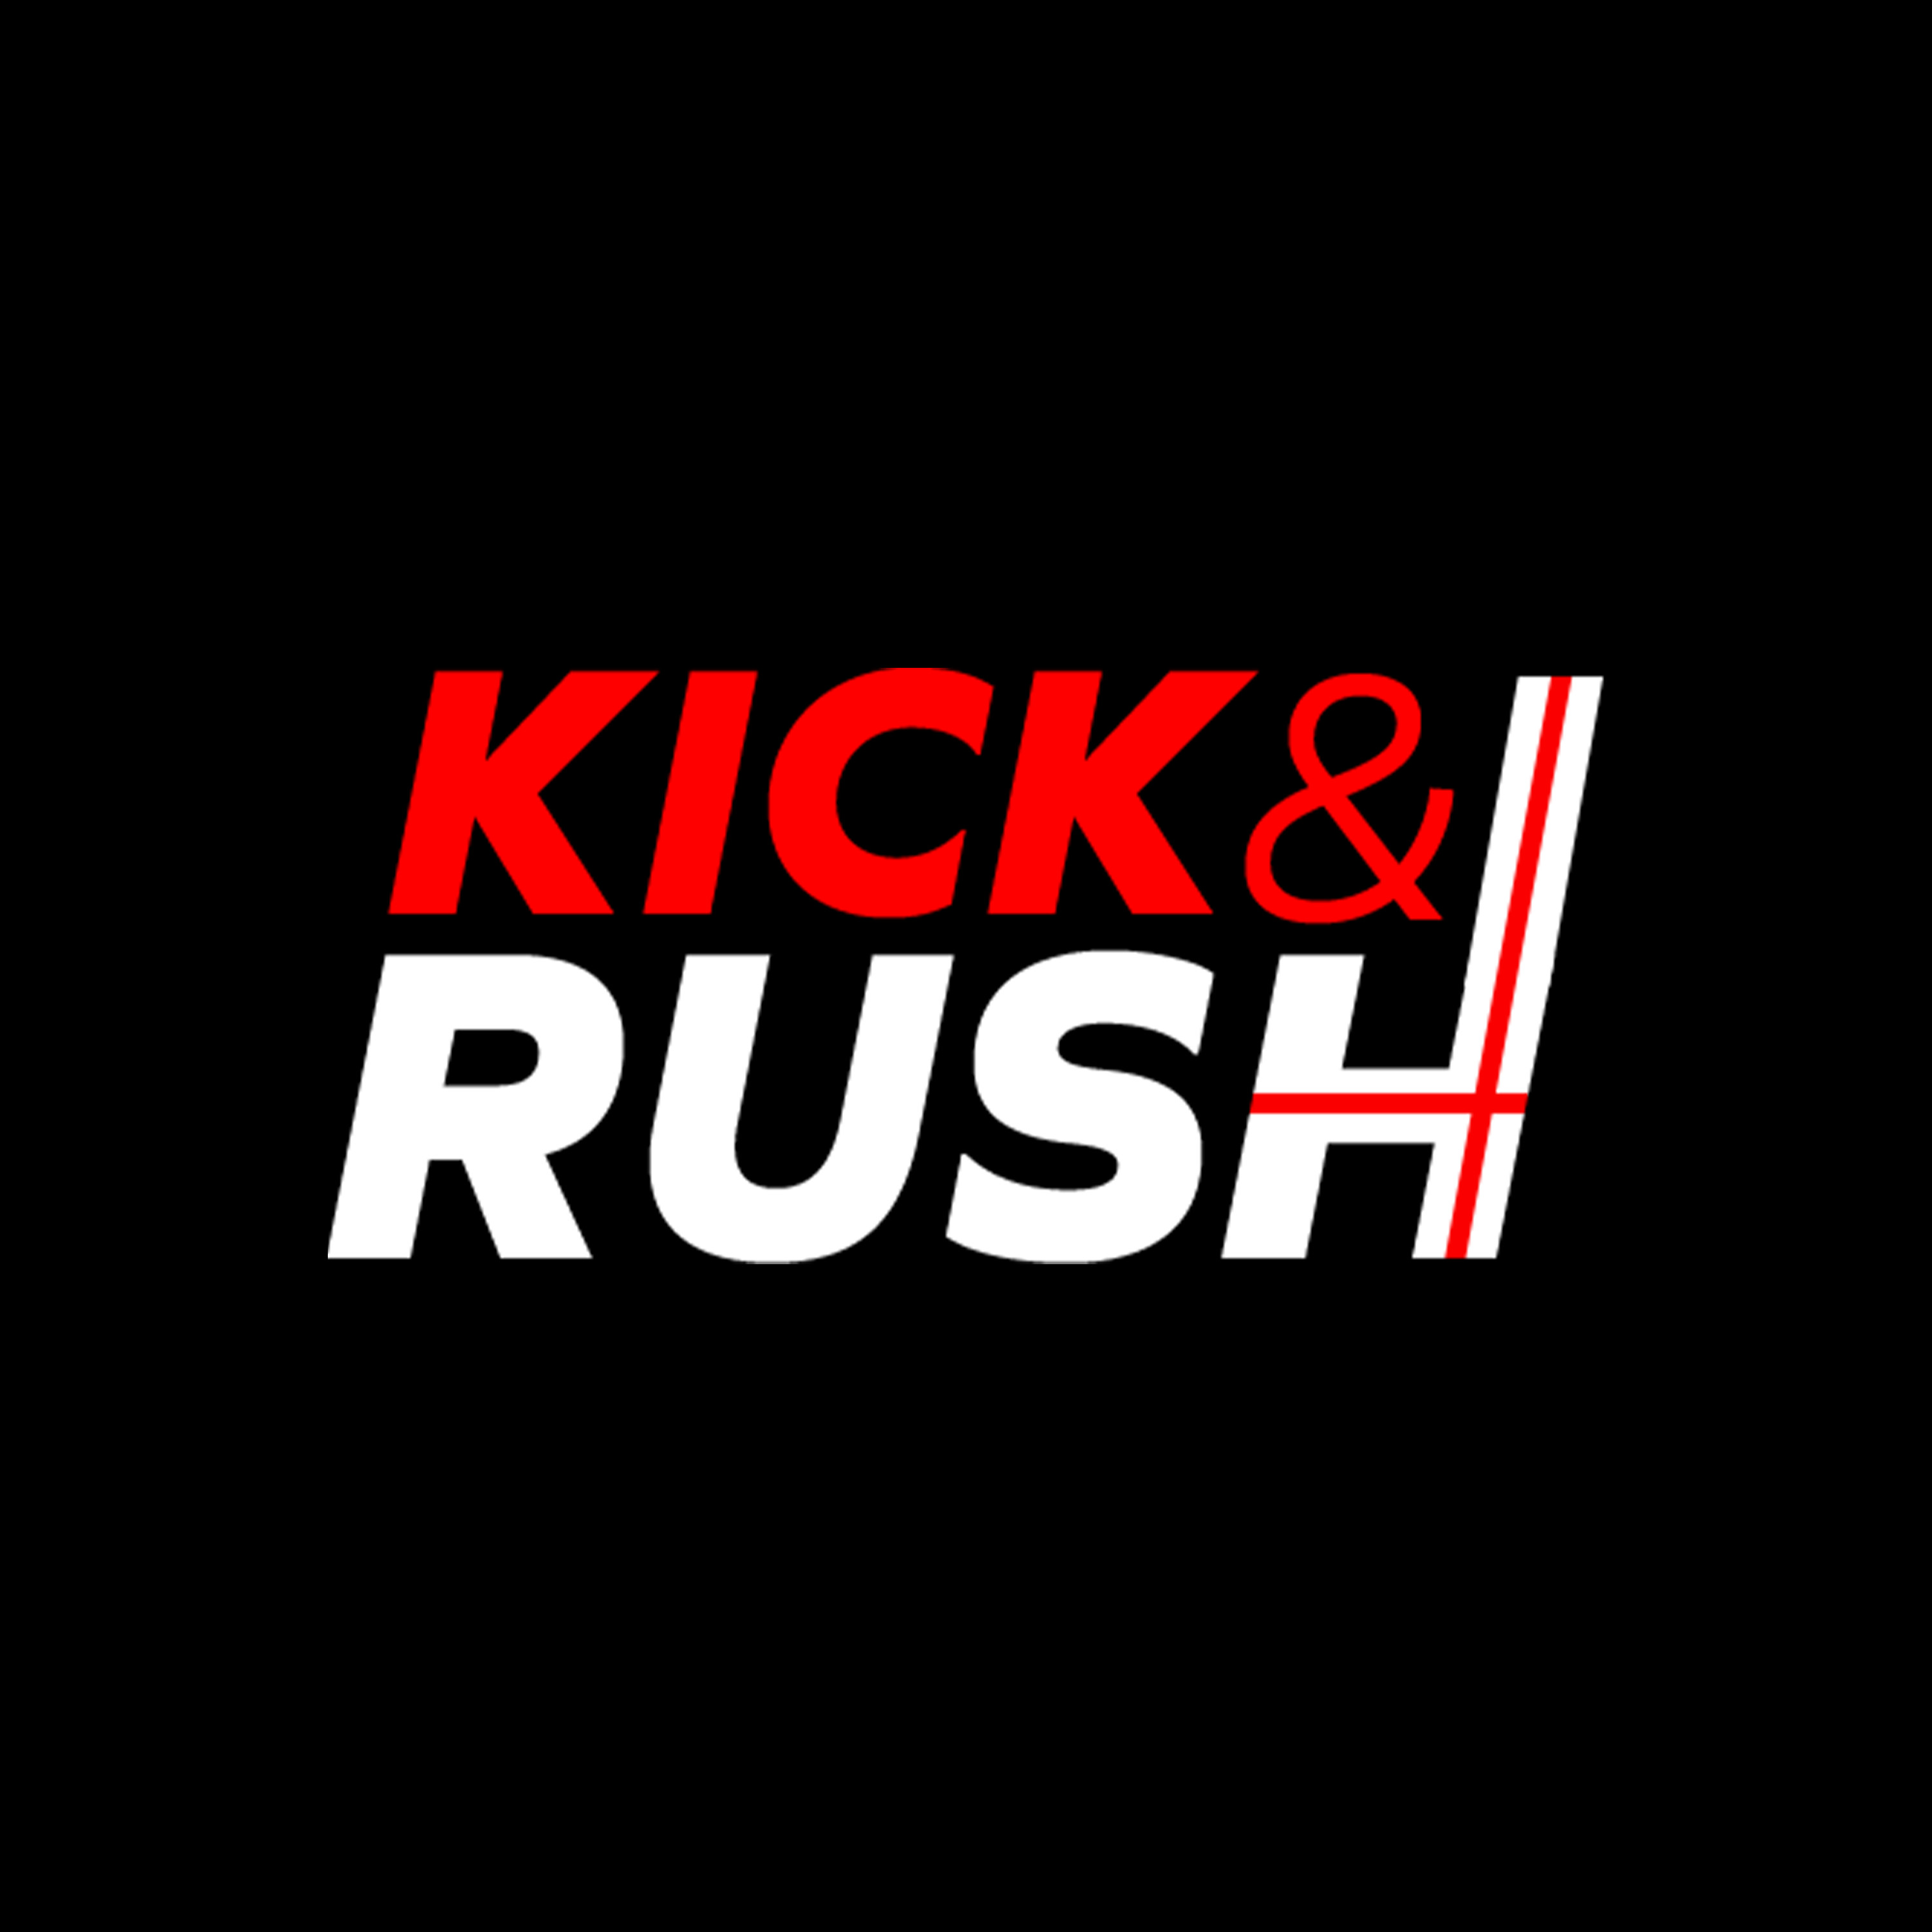 KICK&RUSH - De naweeën van de Super League